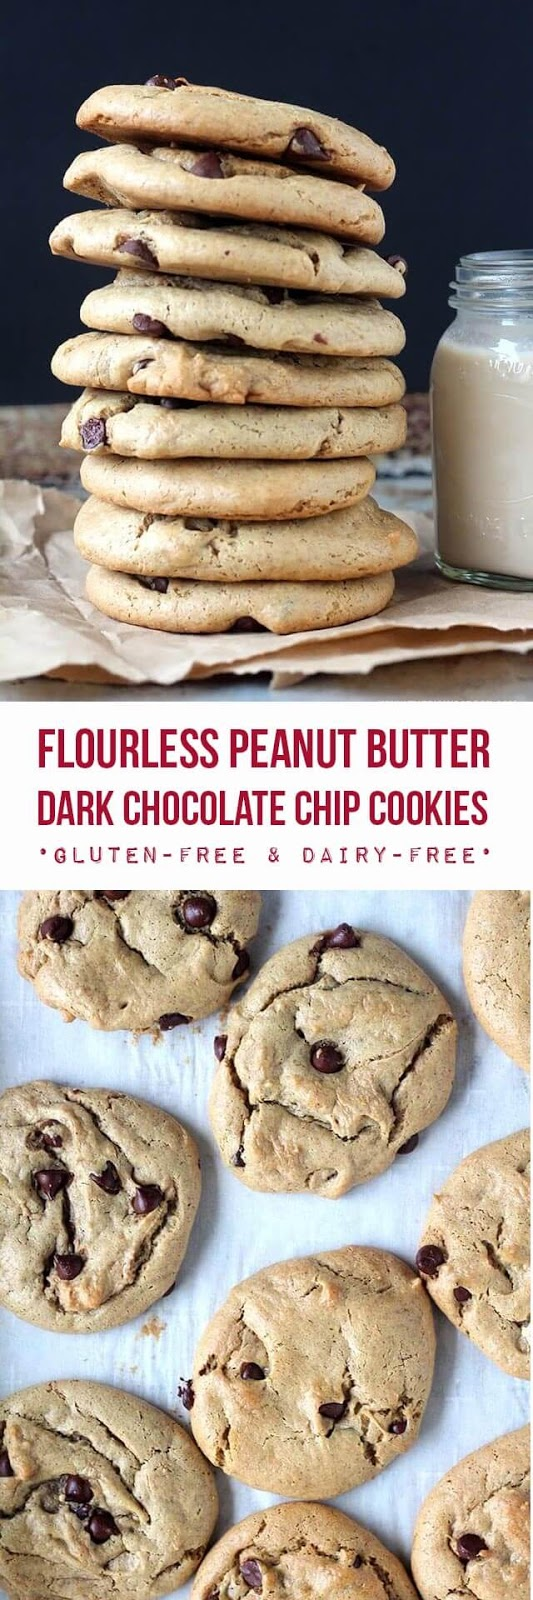 Easy flourless peanut butter cookies studded with dark chocolate chips and sweetened with maple syrup. These cookies are incredibly soft, full of rich peanut butter flavor, and they develop a wonderful chewiness the day after baking them. {gluten-free & dairy-free}